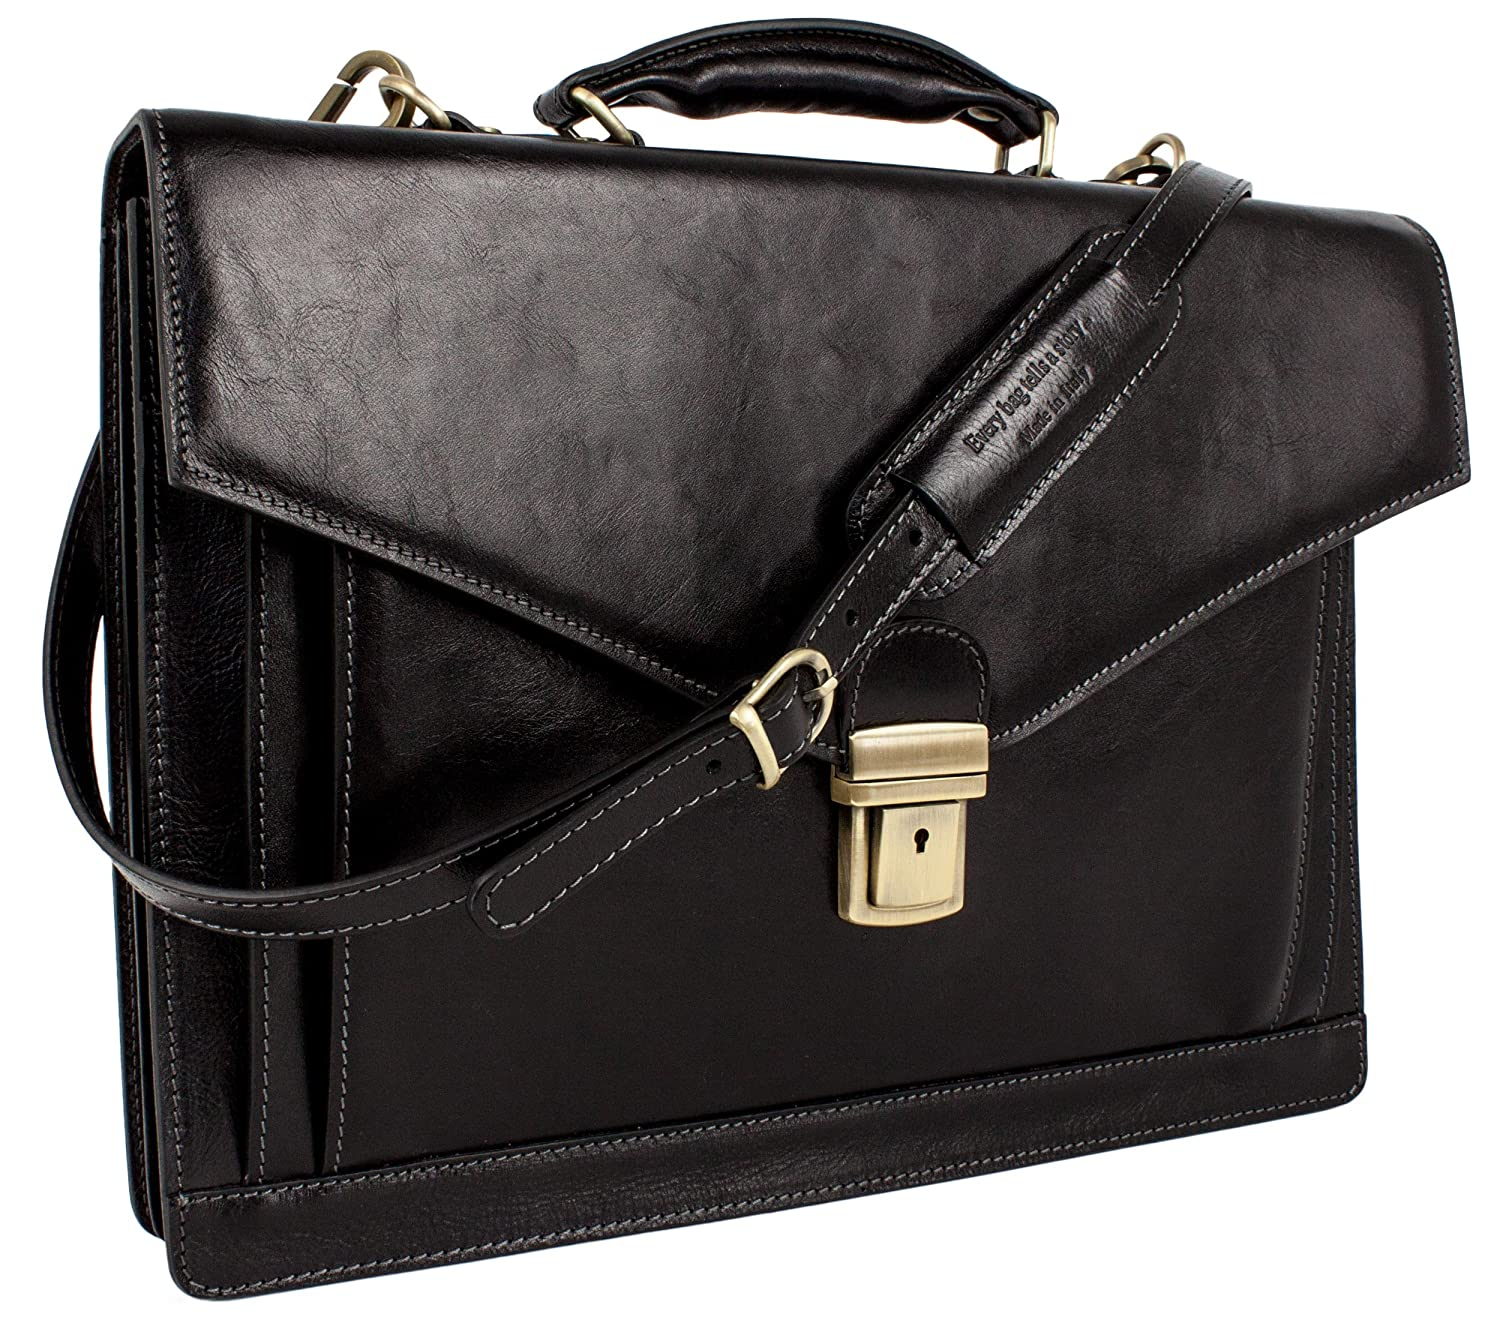 325f5acf47 Amazon.com  Leather Briefcase Laptop Bag Medium Attache Unisex Black  Classic Style - Time Resistance  Office Products